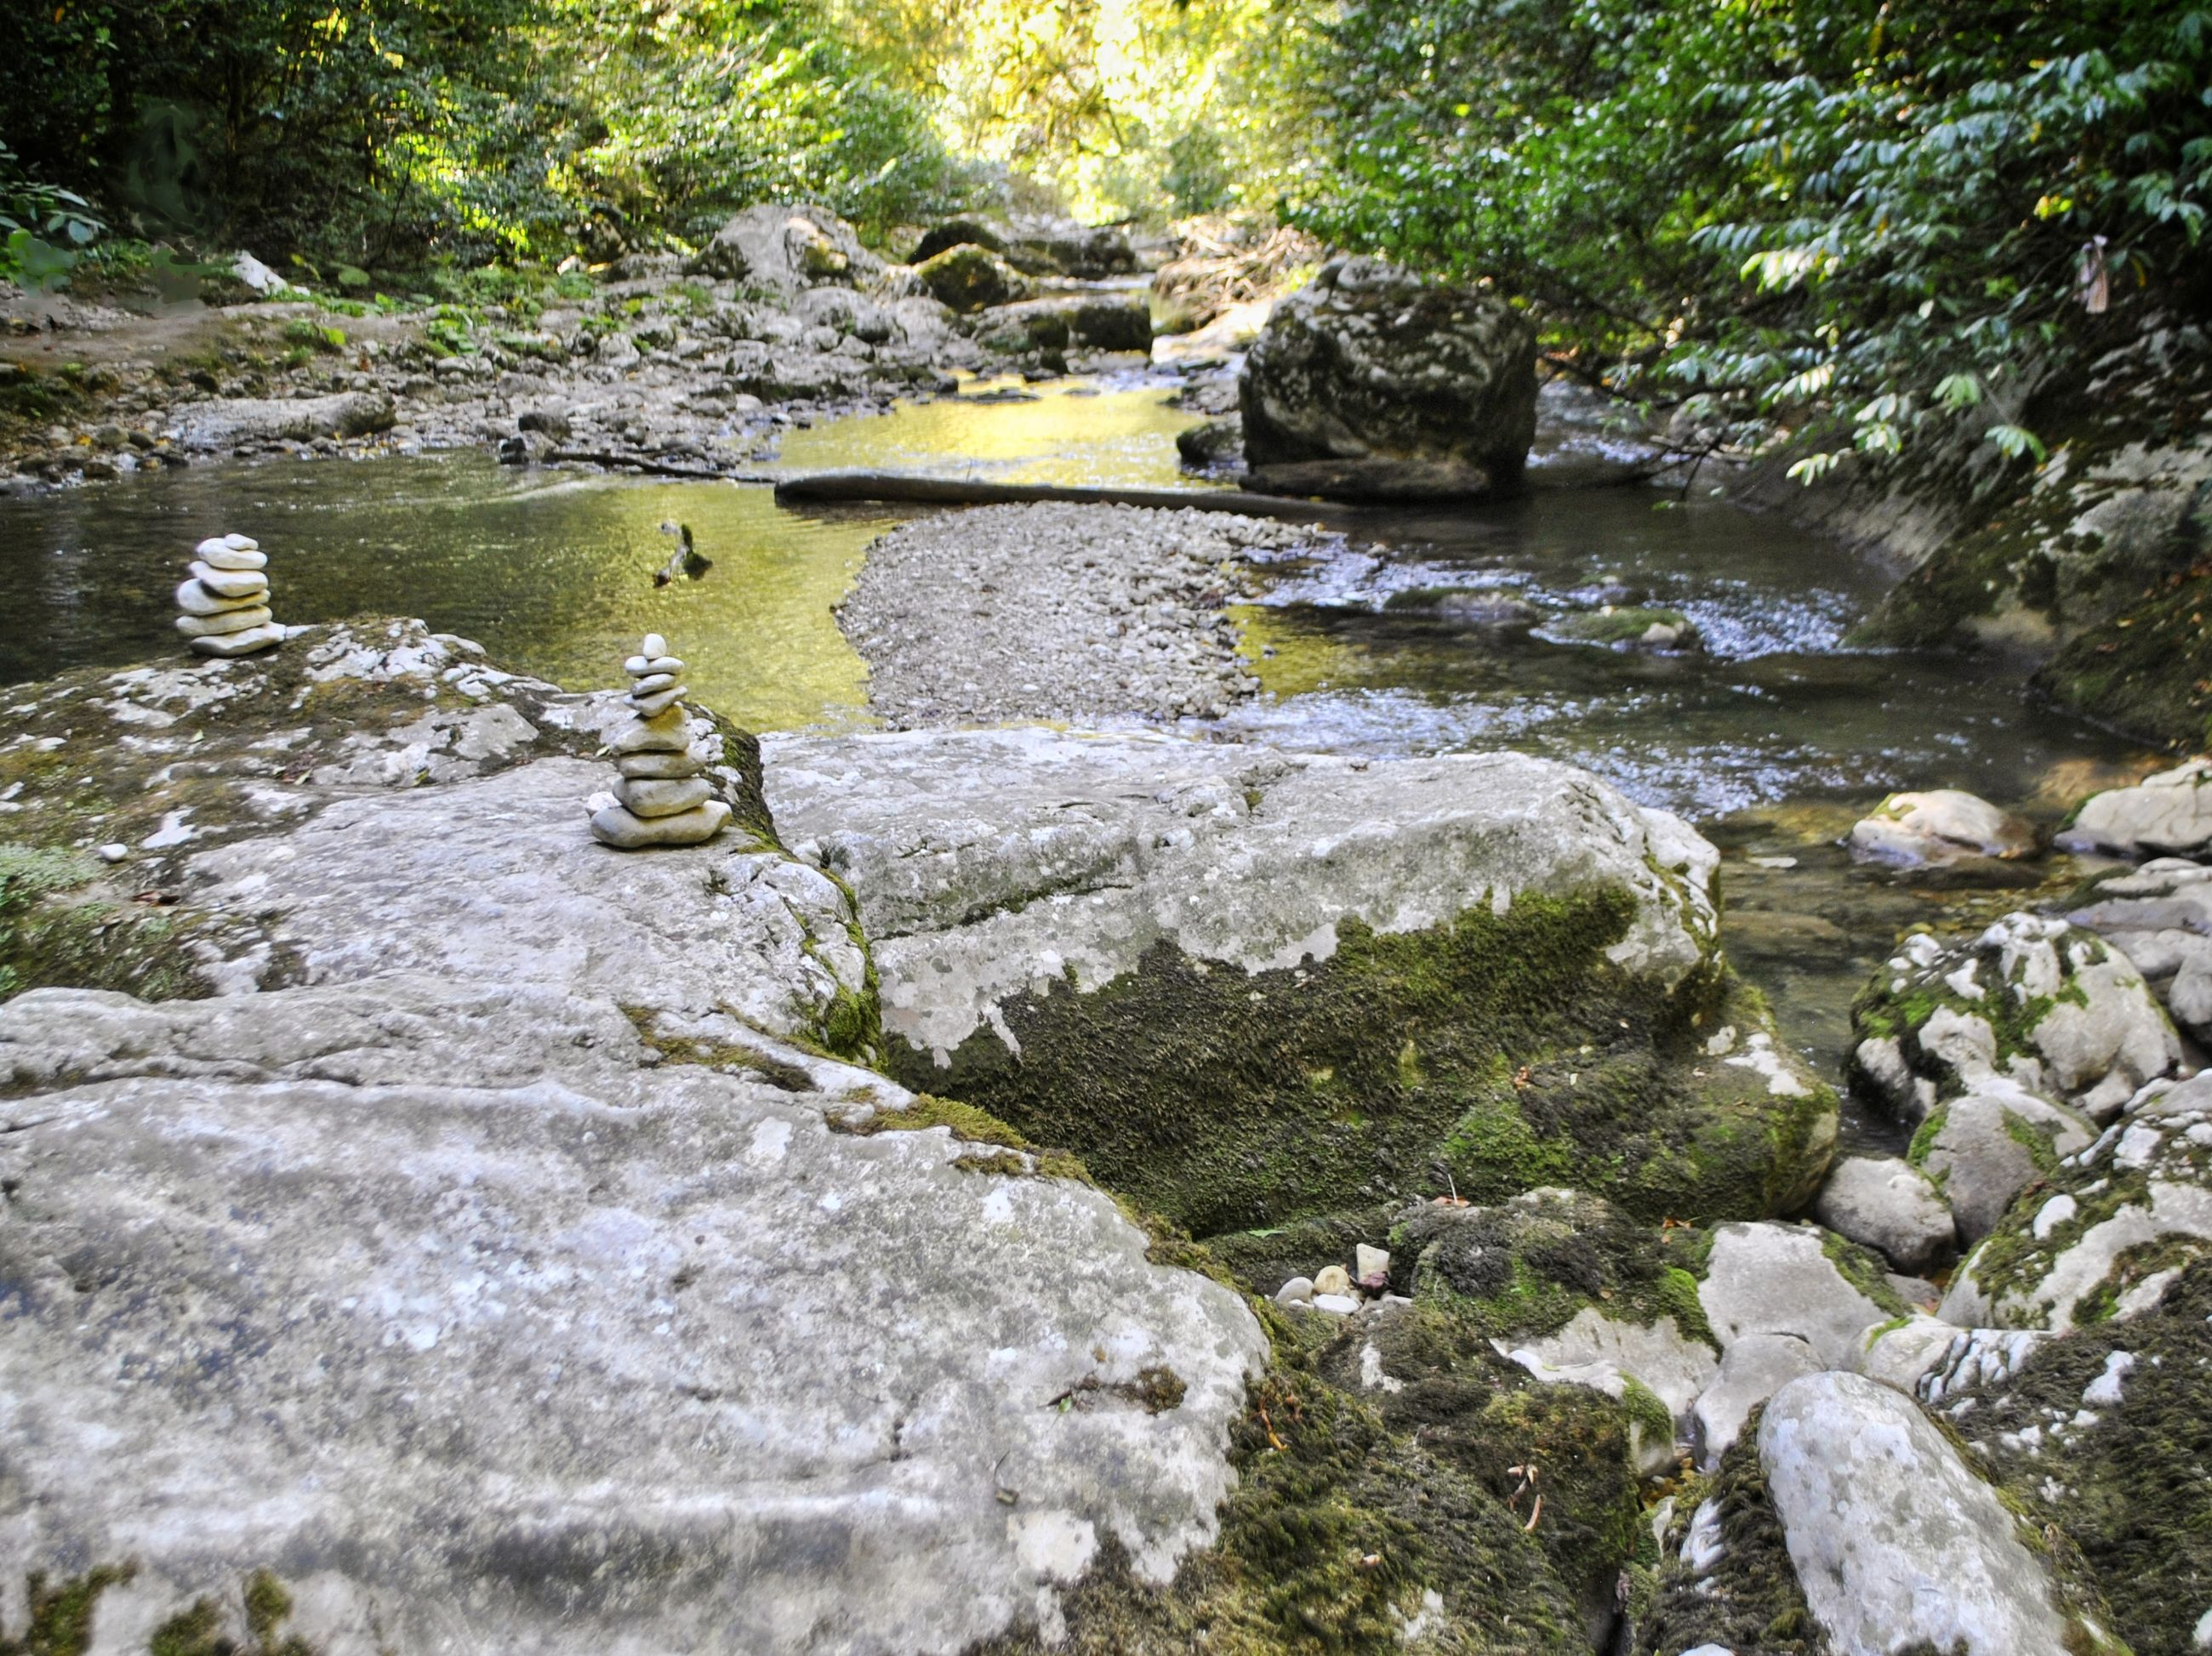 water, rock, solid, nature, rock - object, plant, stone, day, river, no people, beauty in nature, flowing water, stream - flowing water, tree, tranquility, forest, land, stone - object, flowing, outdoors, shallow